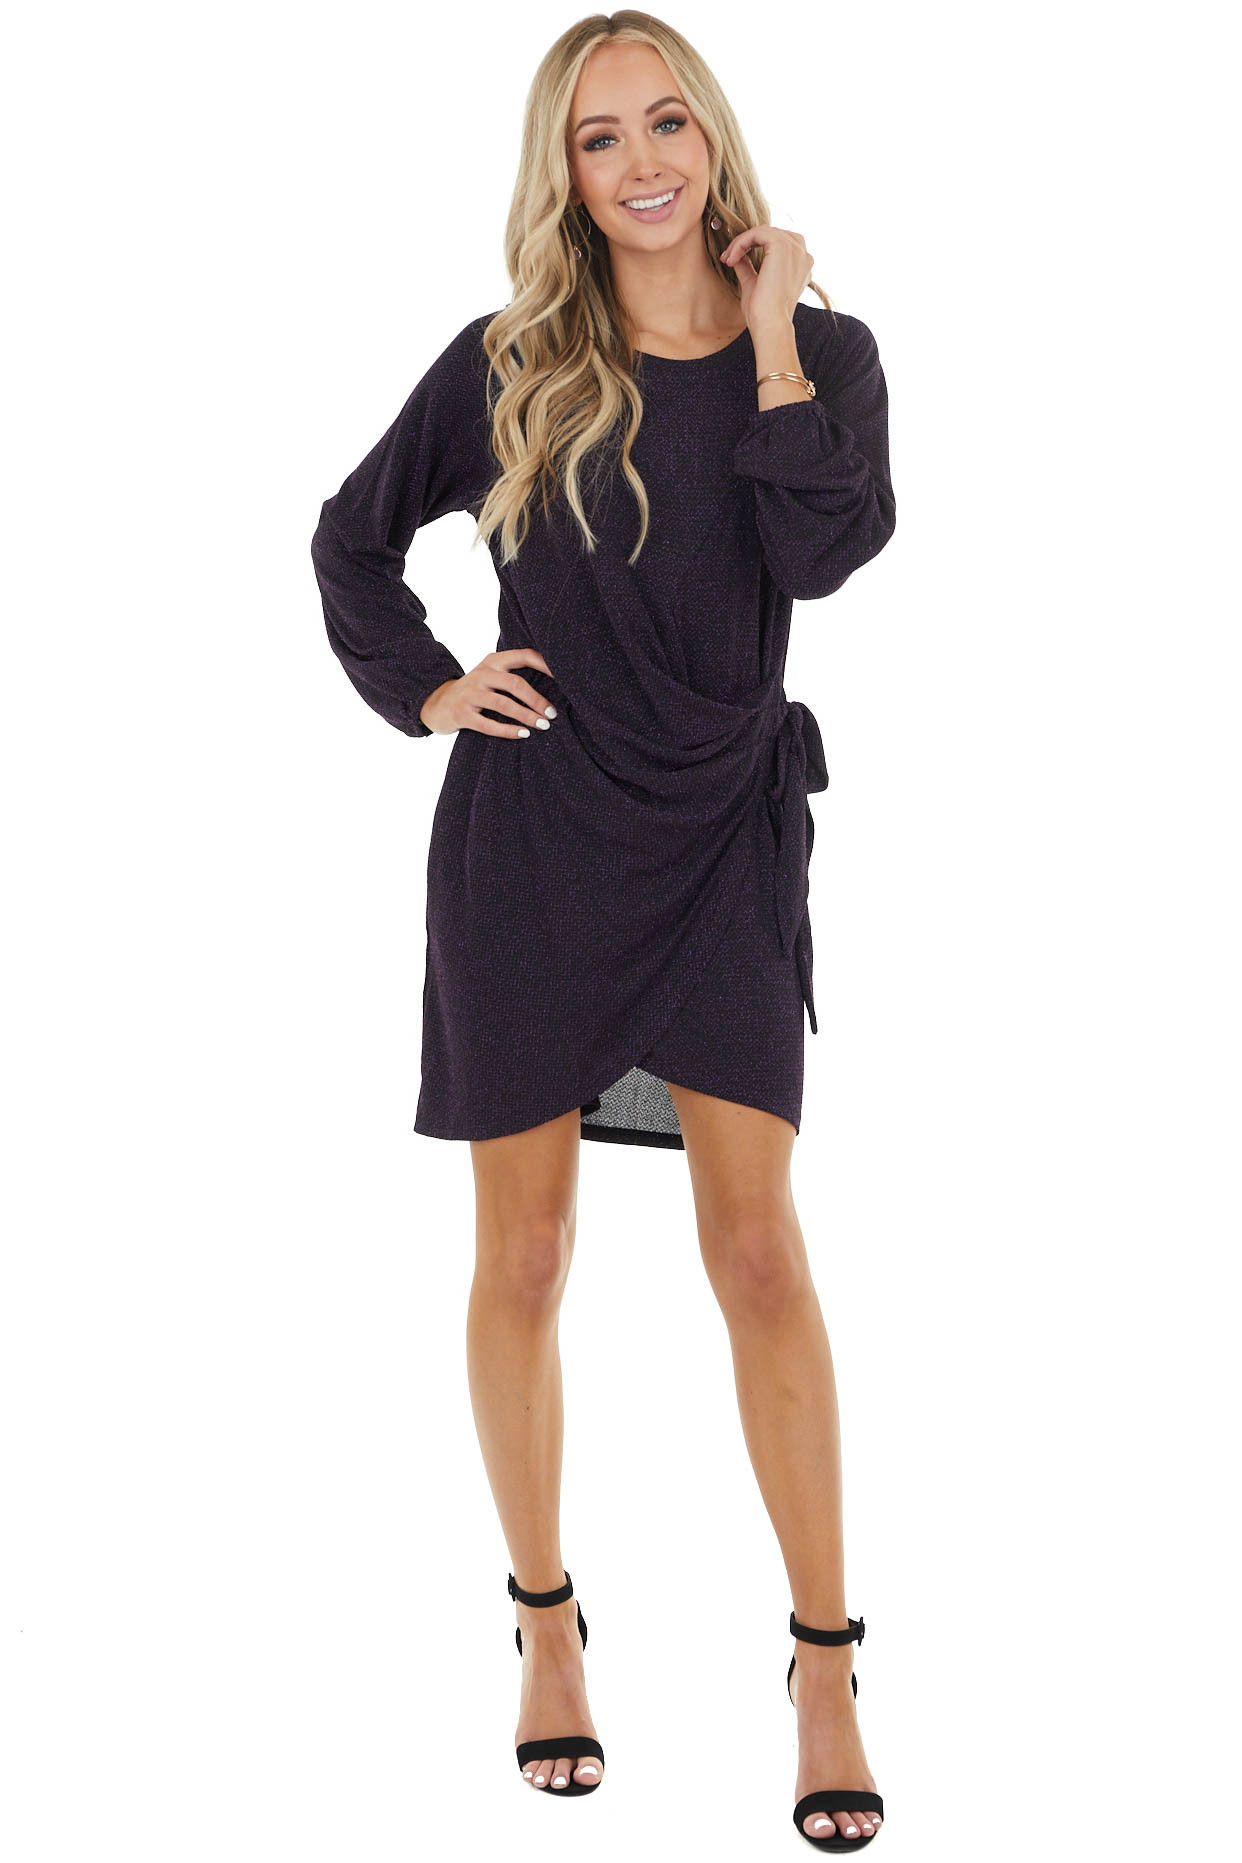 Black and Amethyst Sparkly Draped Dress with Side Tie